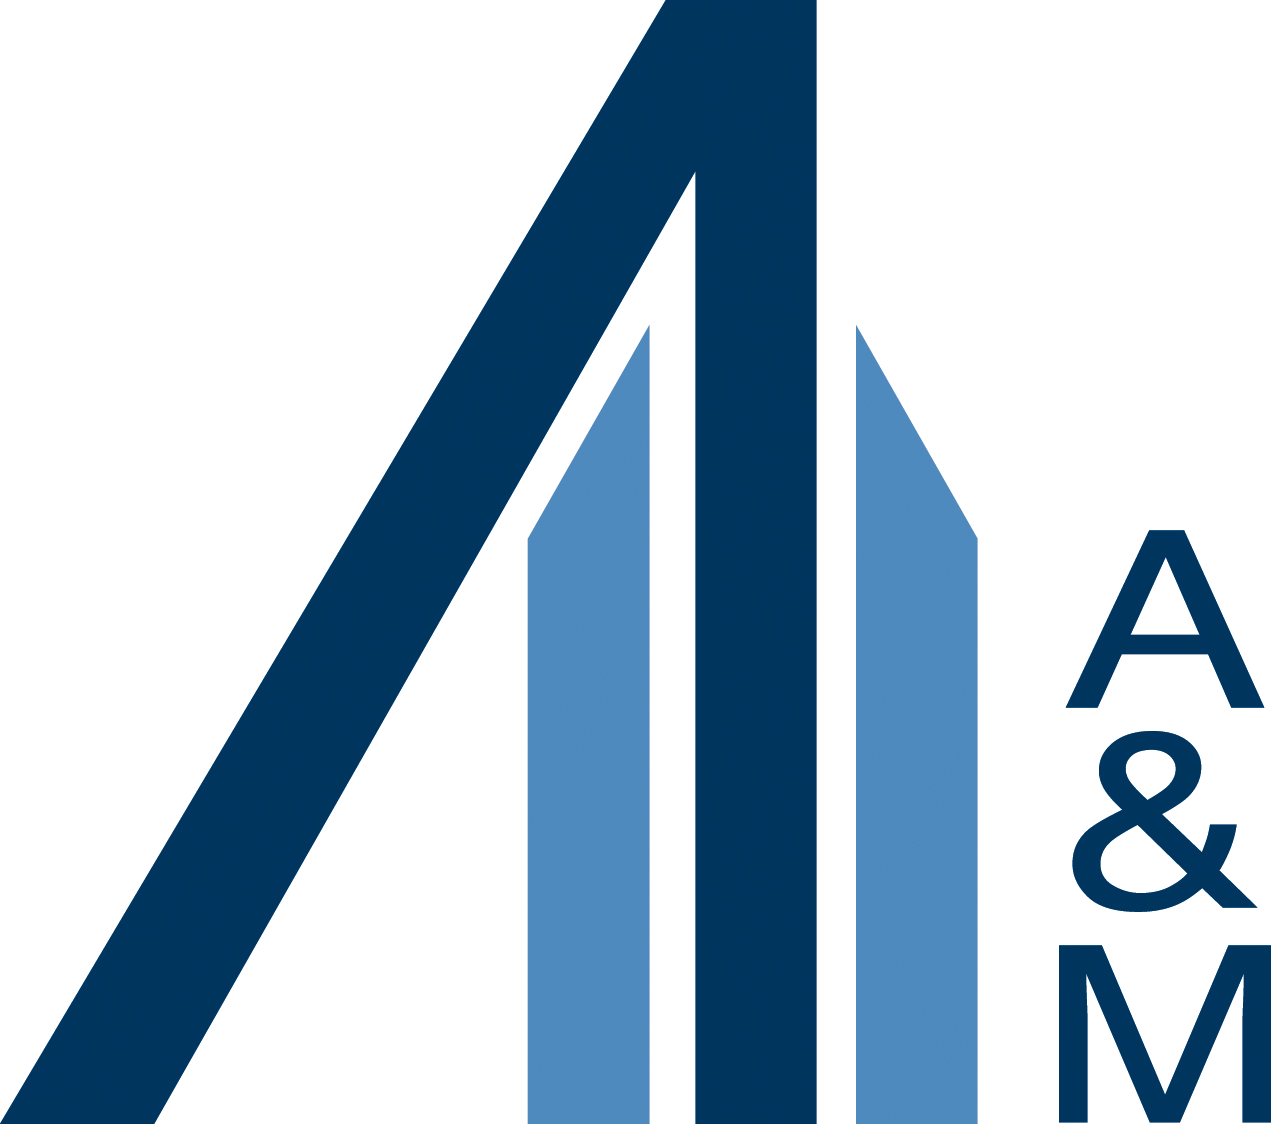 Logo of Alvarez & Marsal, a famous consultancy firm and also a SYSTRAN's translation partner. SYSTRAN Pure Neural™ Machine Translation